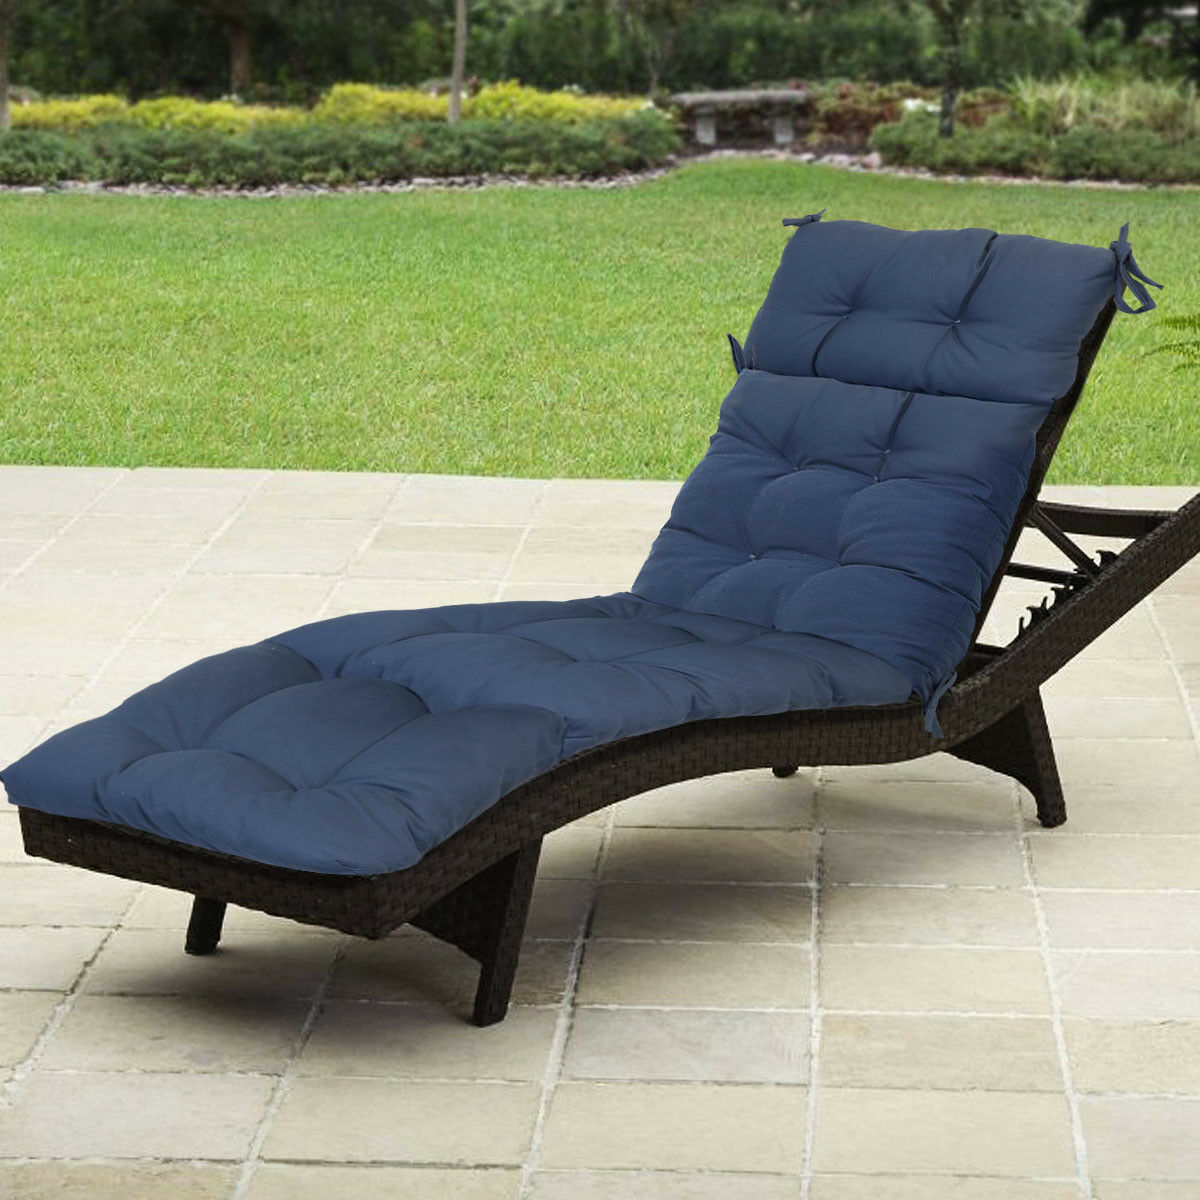 Details About Outdoor Patio Pretty Wicker Chaise Lounge Chair Cushion Made In Usa Navy Blue